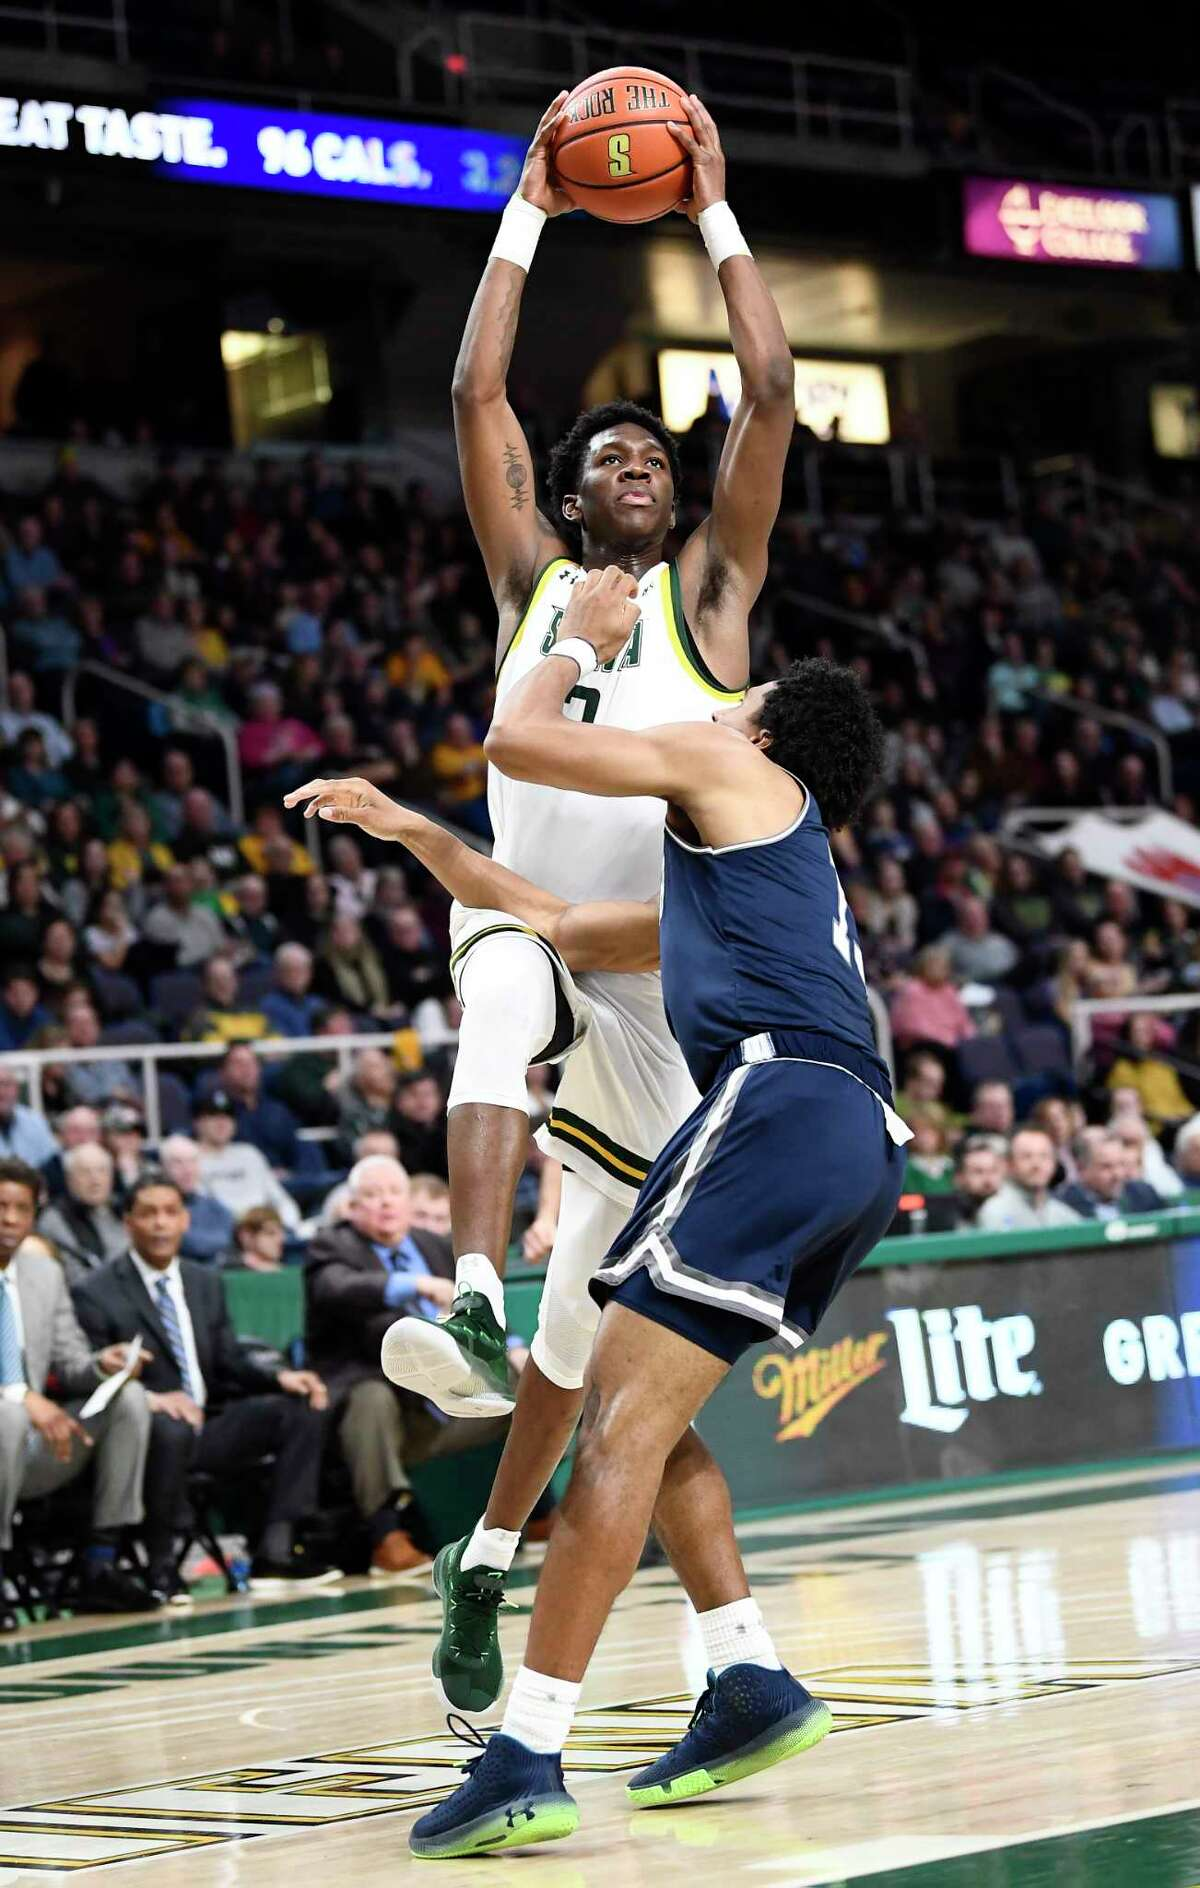 Siena guard Gary Harris Jr. (2) scores against Monmouth guard Marcus McClary (13) during the first half of an NCAA basketball game Friday, Jan. 3, 2020, in Albany, N.Y. (Hans Pennink / Special to the Times Union) ORG XMIT: 010420_siena_HP103